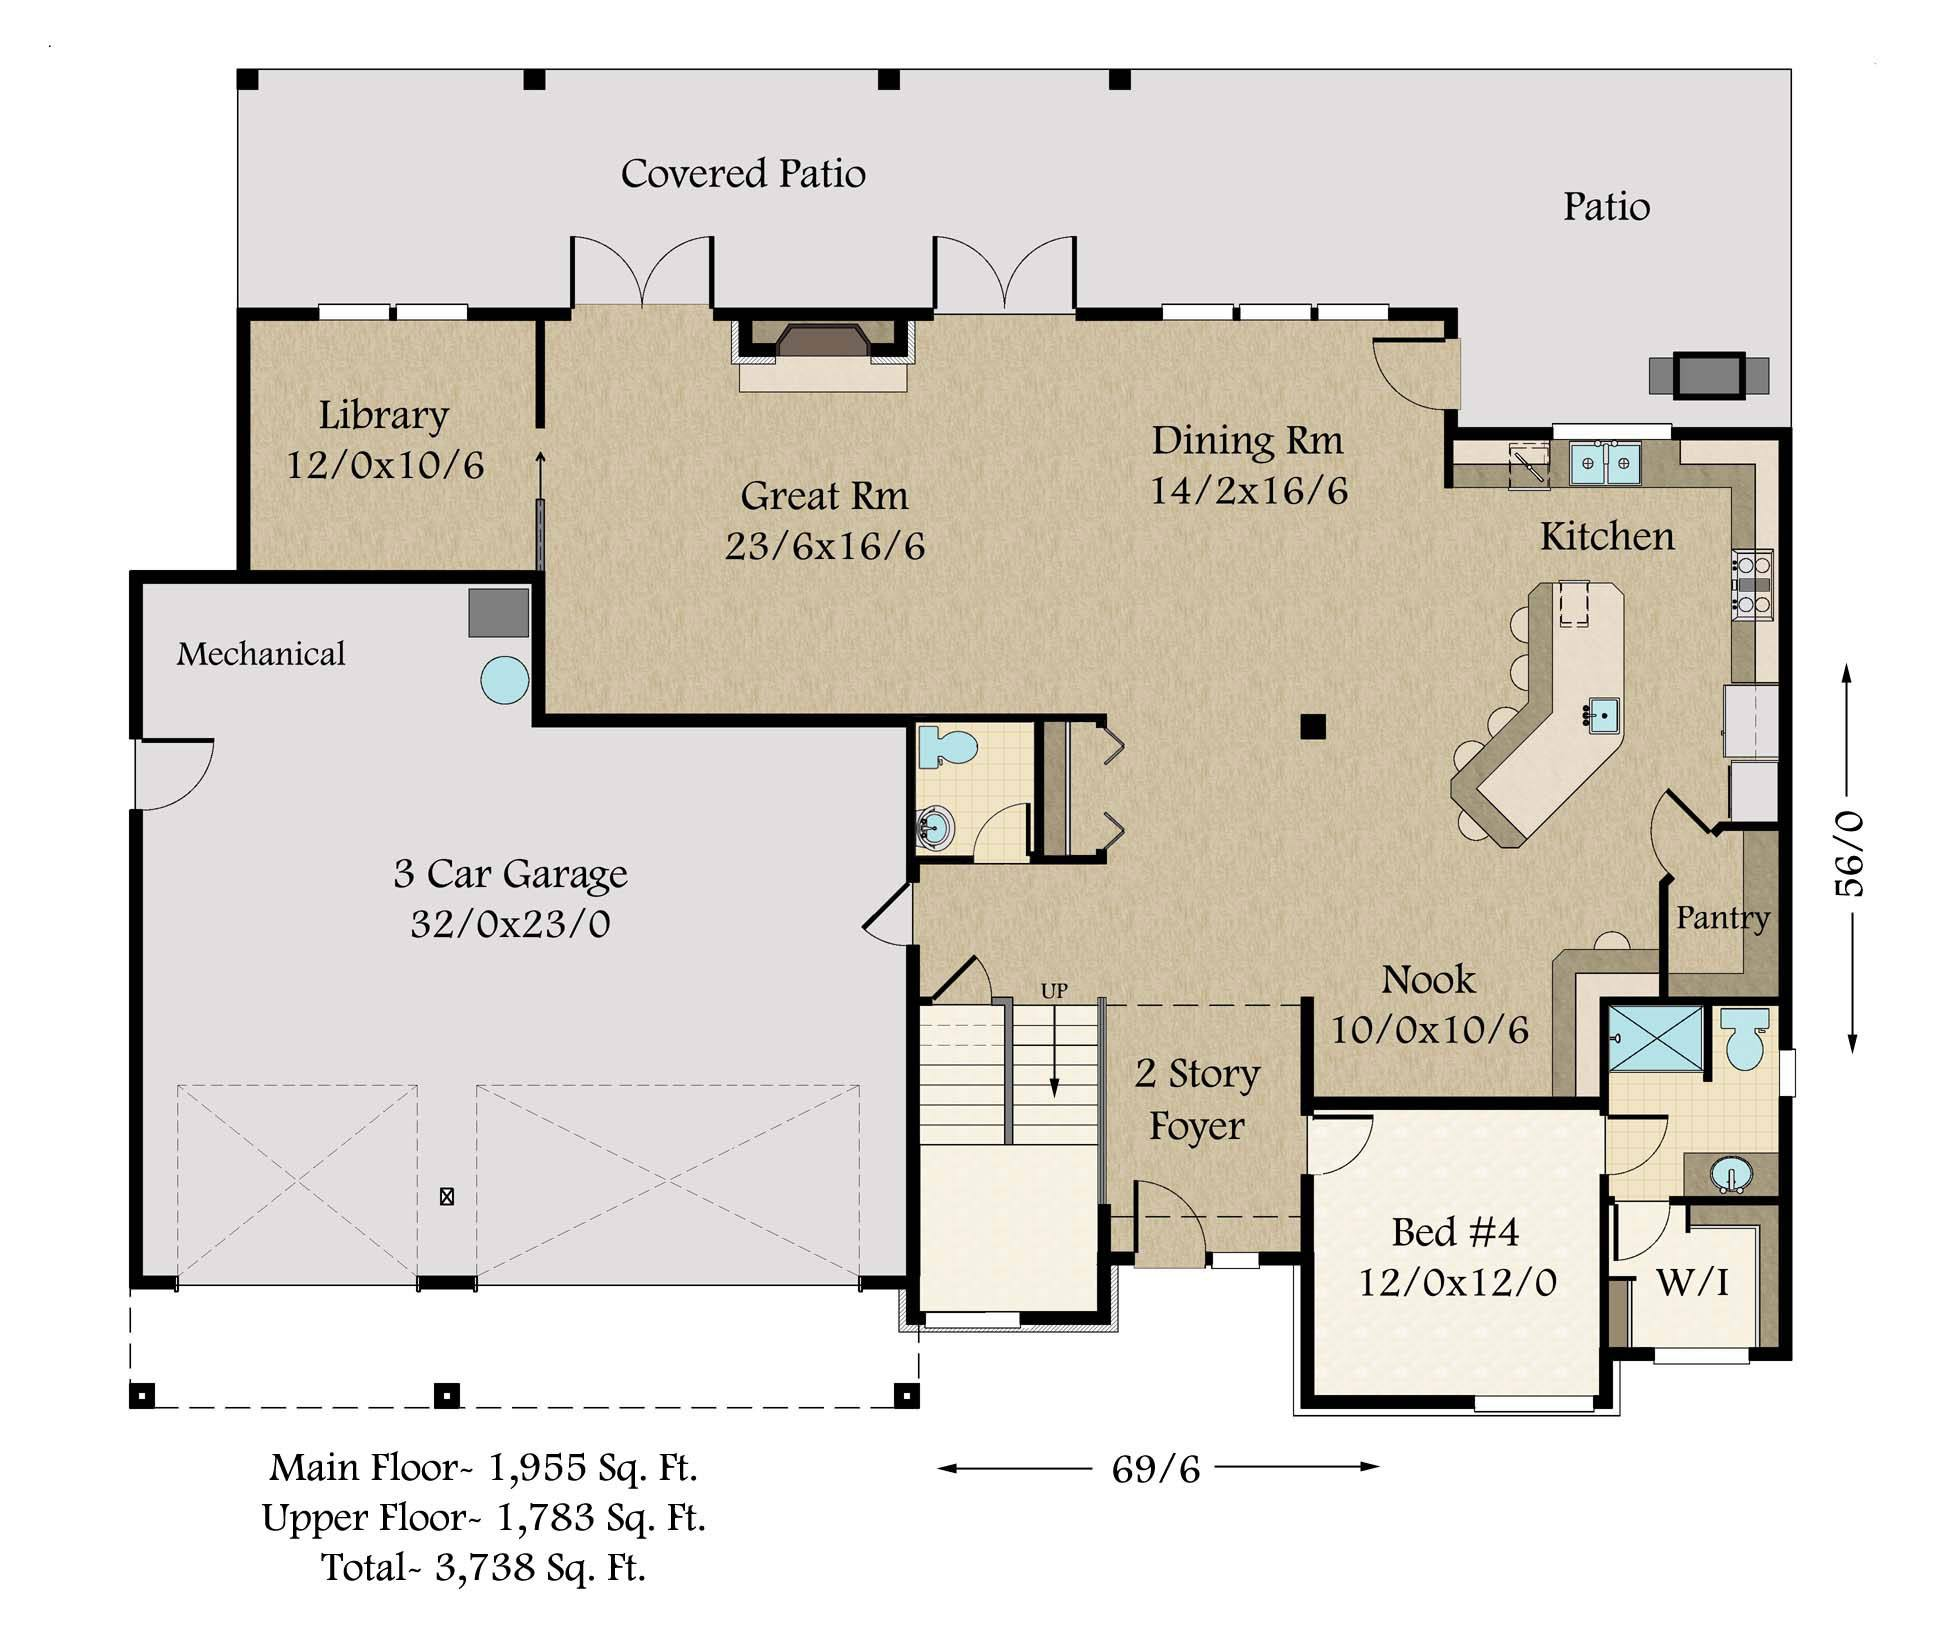 8000 sq ft house plans 28 images 8000 sq ft home floor for Floor plans 8000 sq ft